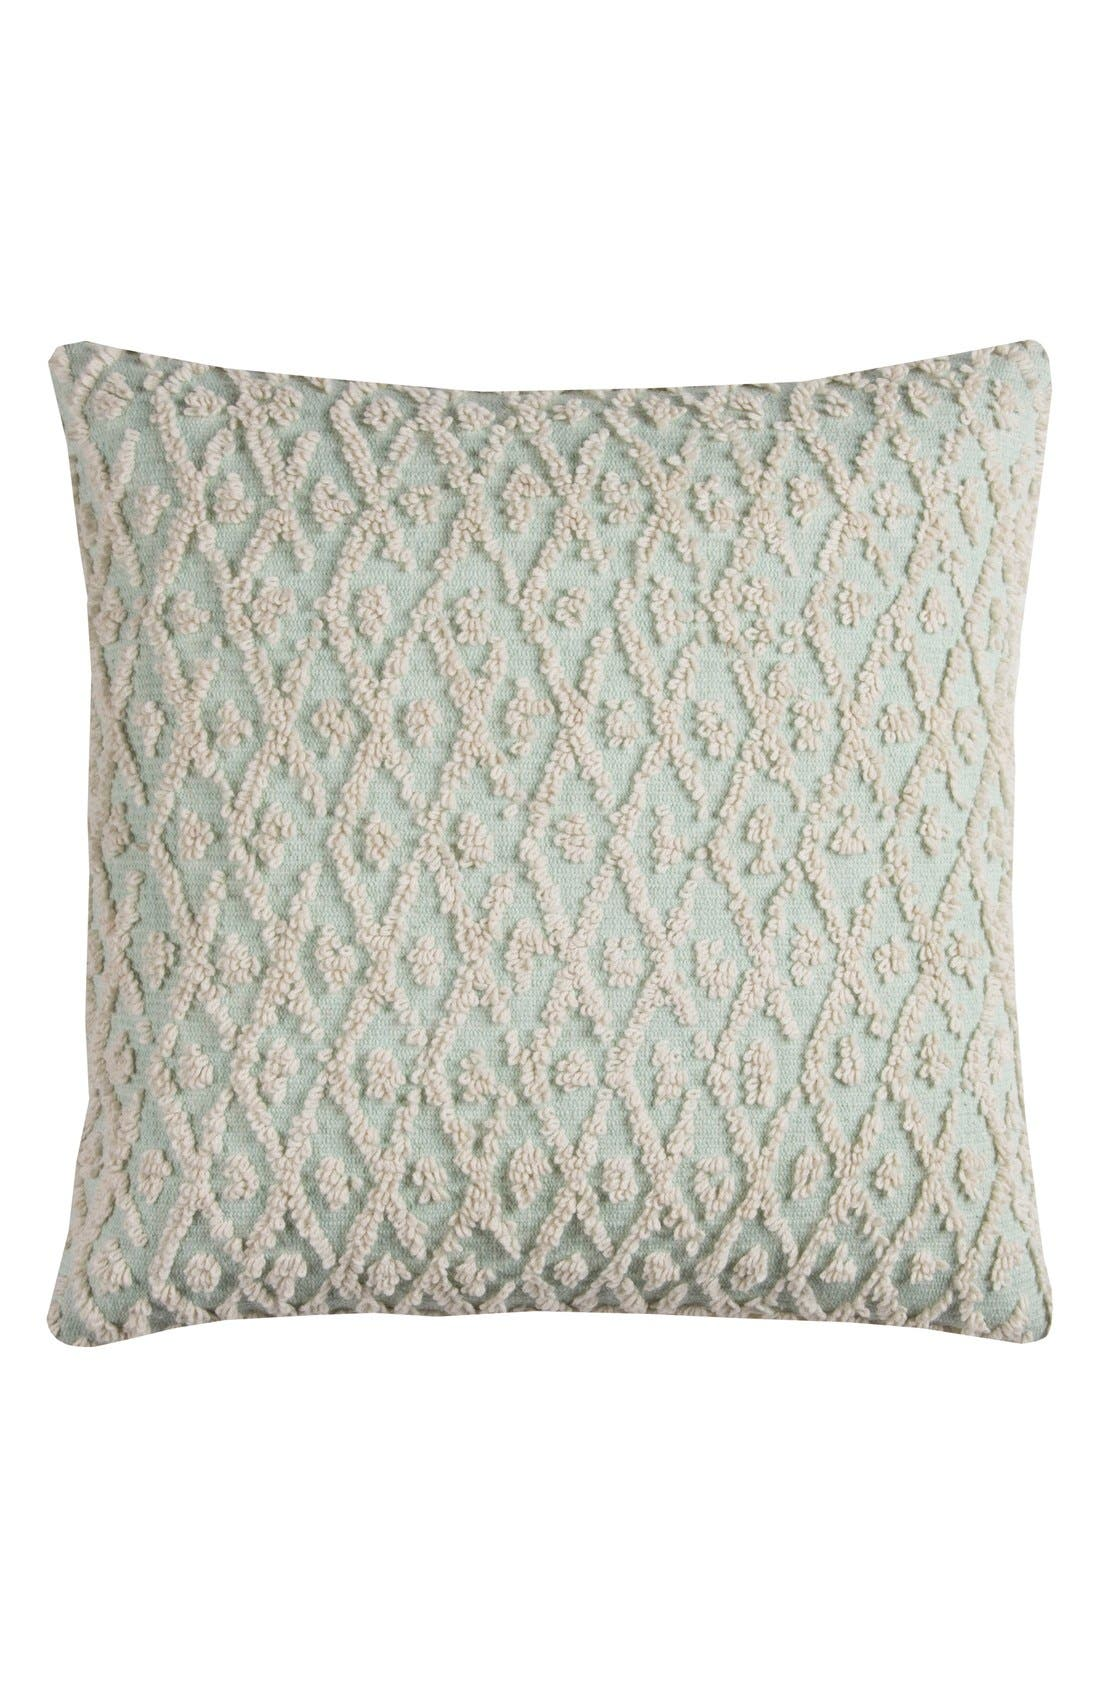 Rizzy Home Abstract Texture Accent Pillow